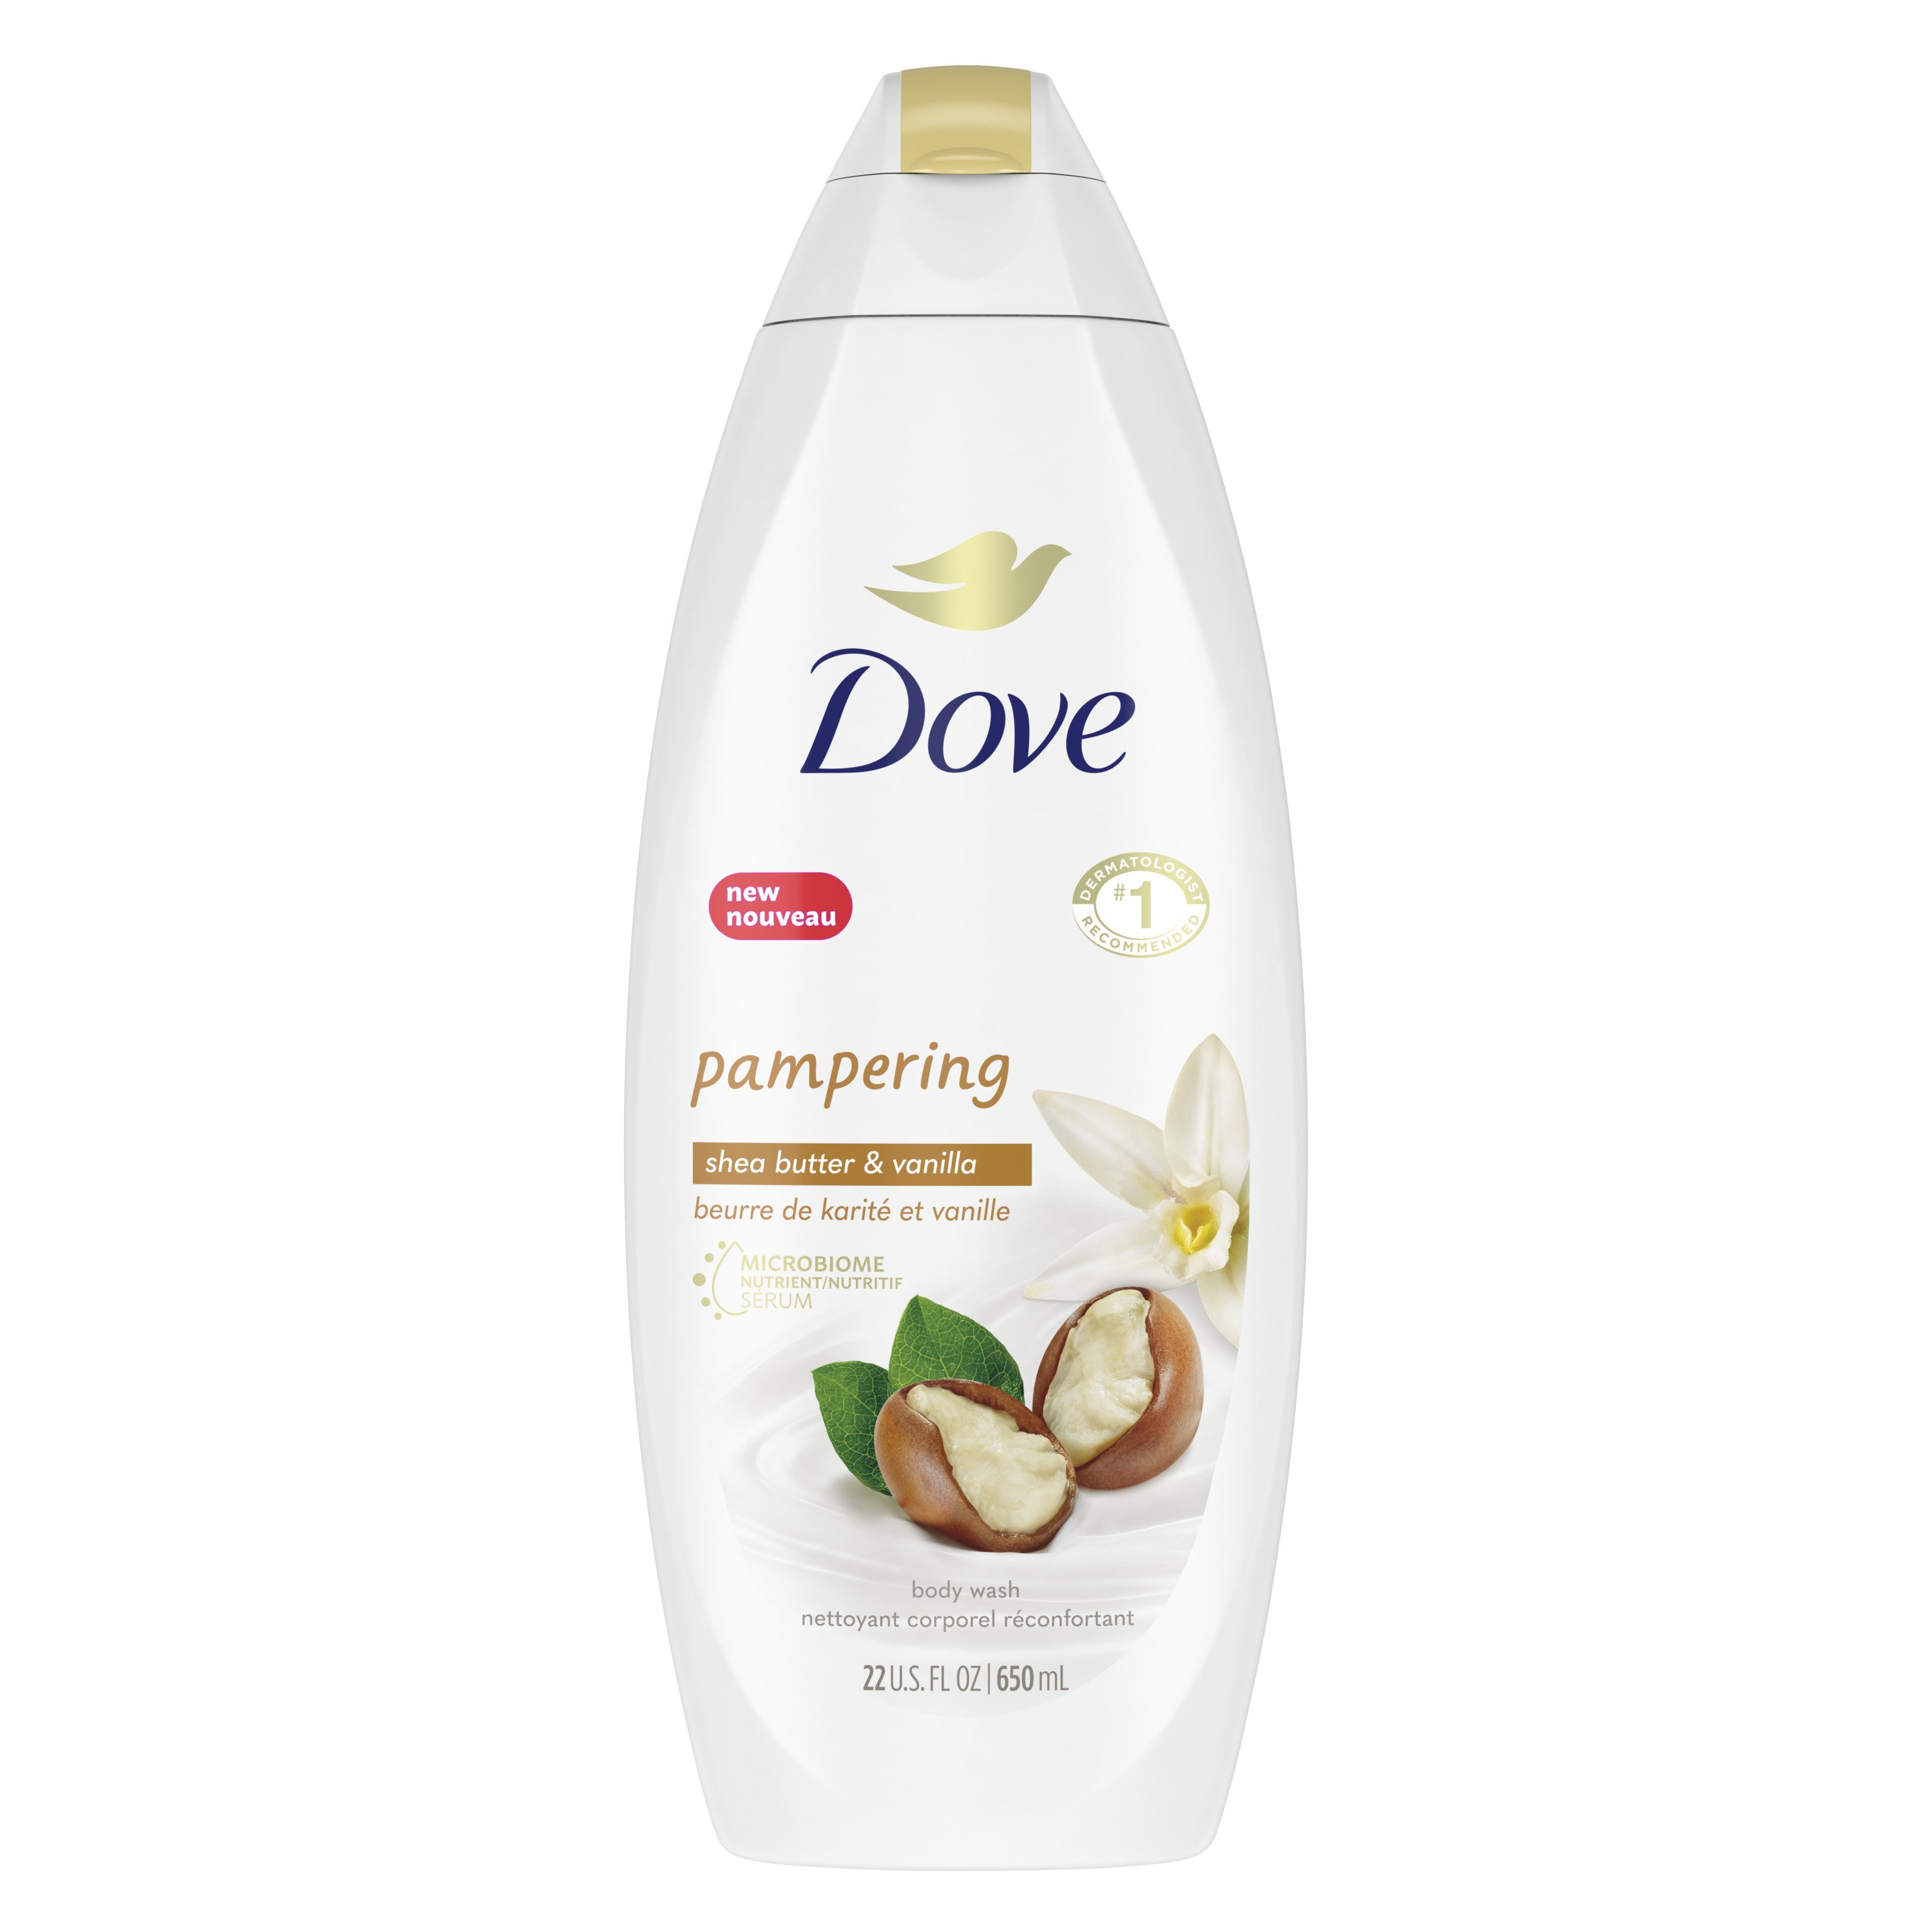 Dove Purely Pampering Shea Butter With Warm Vanilla Body Wash Shop Body Wash At H E B